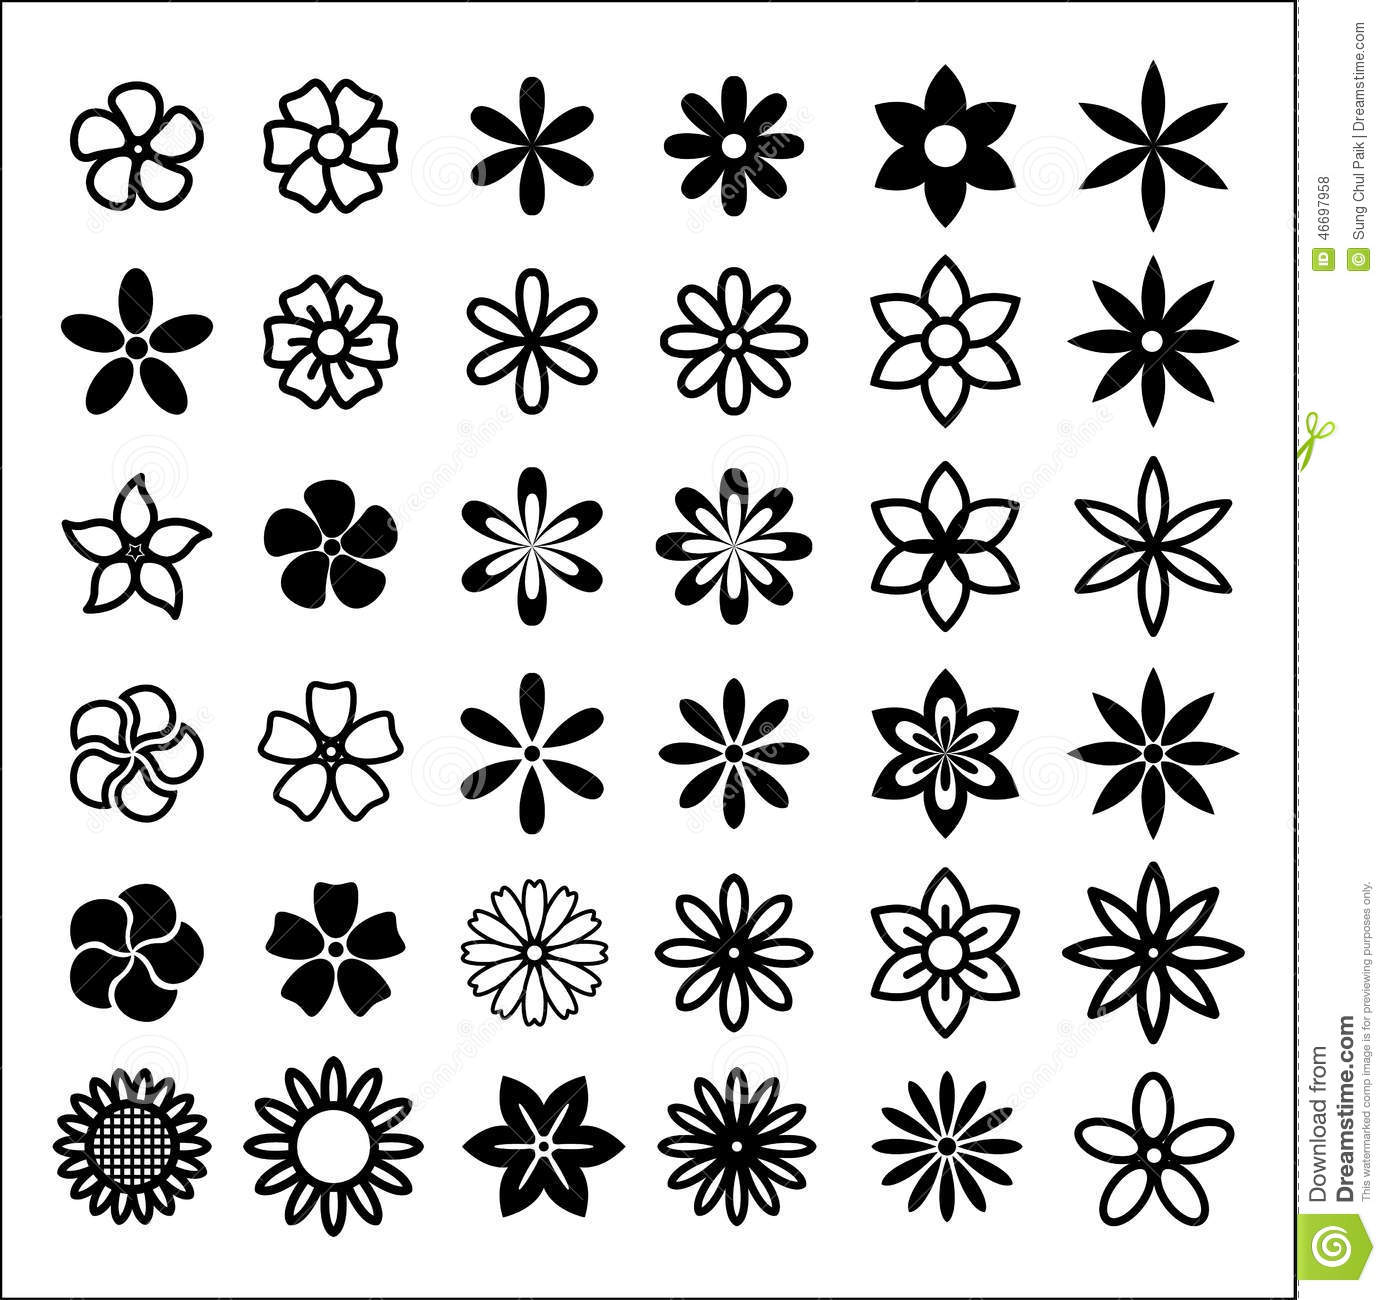 Flower Bud Shapes Stock Vector